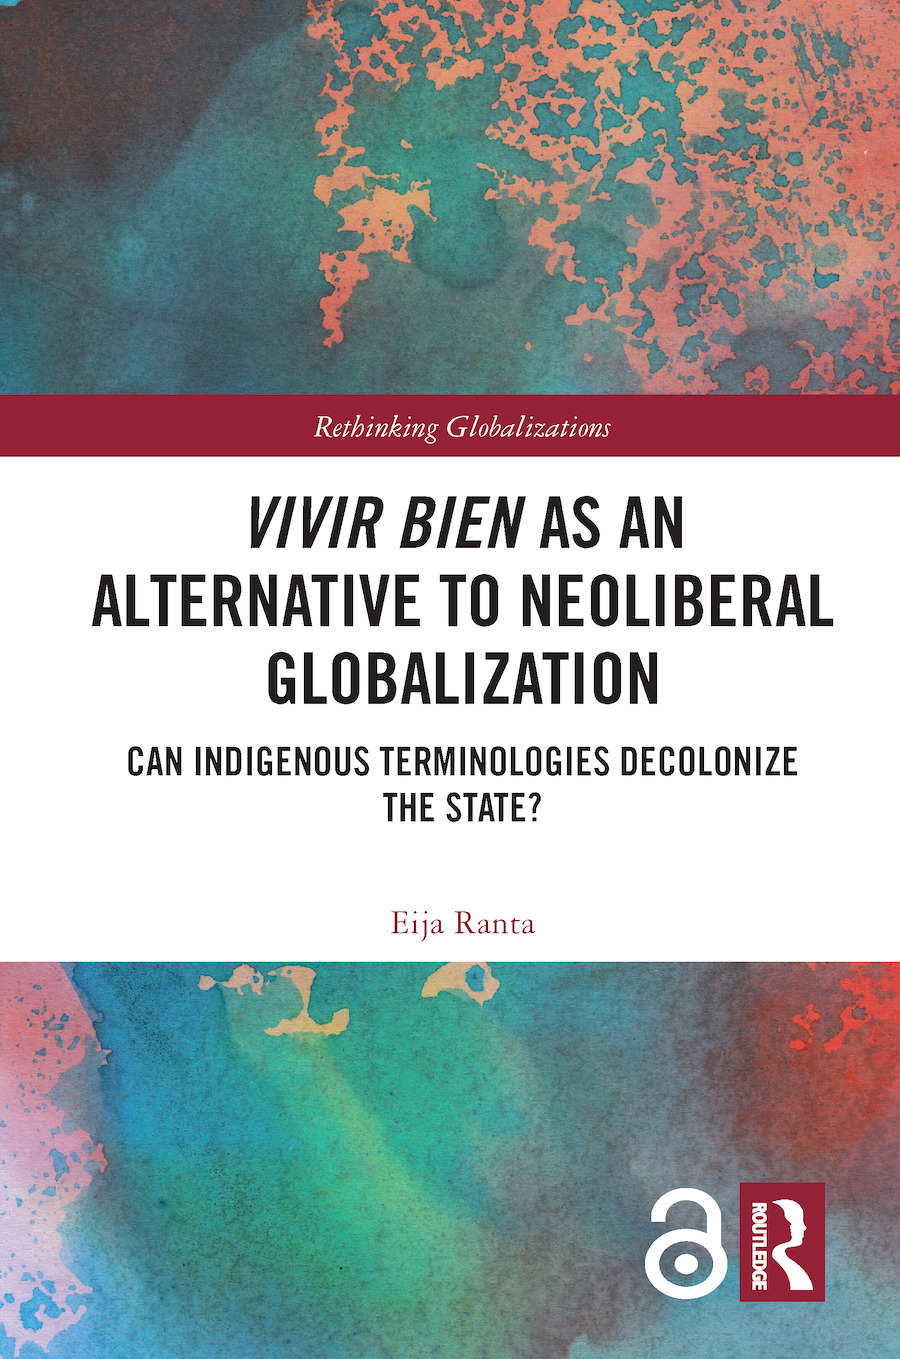 Vivir Bien as an Alternative to Neoliberal Globalization: Can Indigenous Terminologies Decolonize the State? book cover